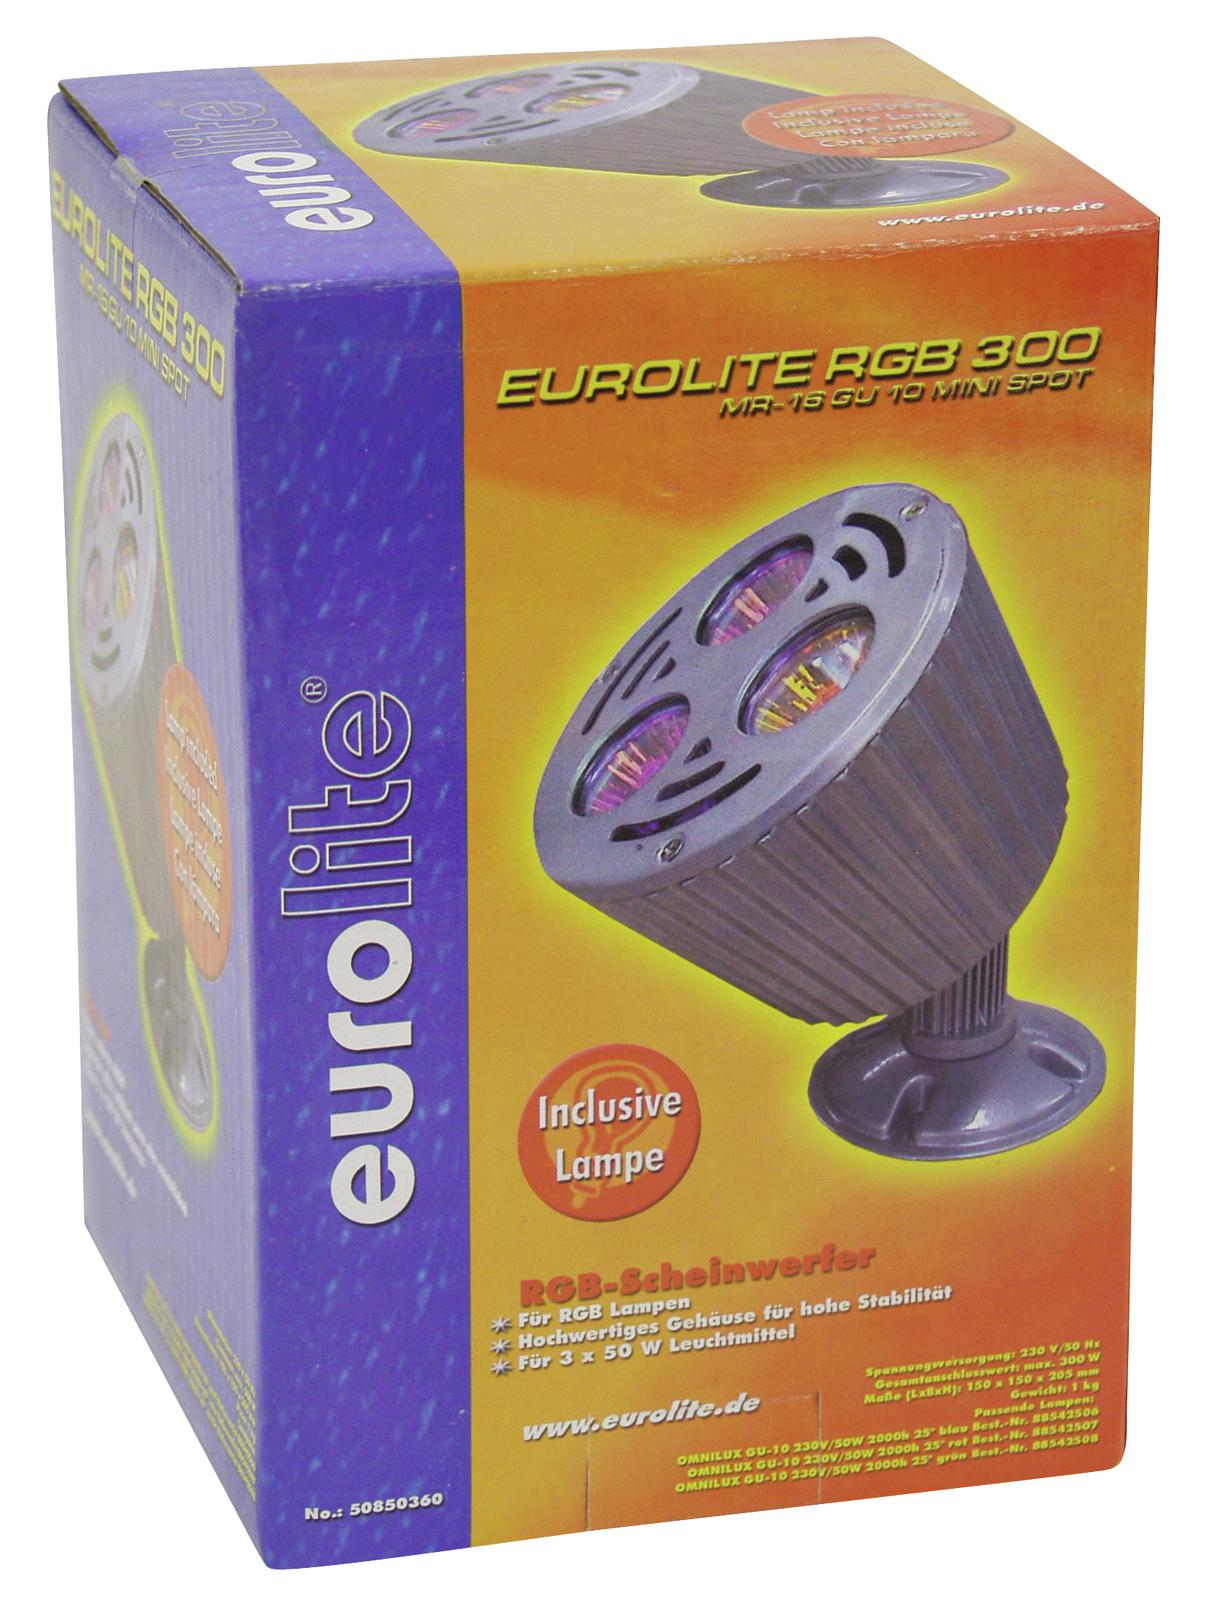 EUROLITE RGB-300 MR-16 GU-10 mini spot